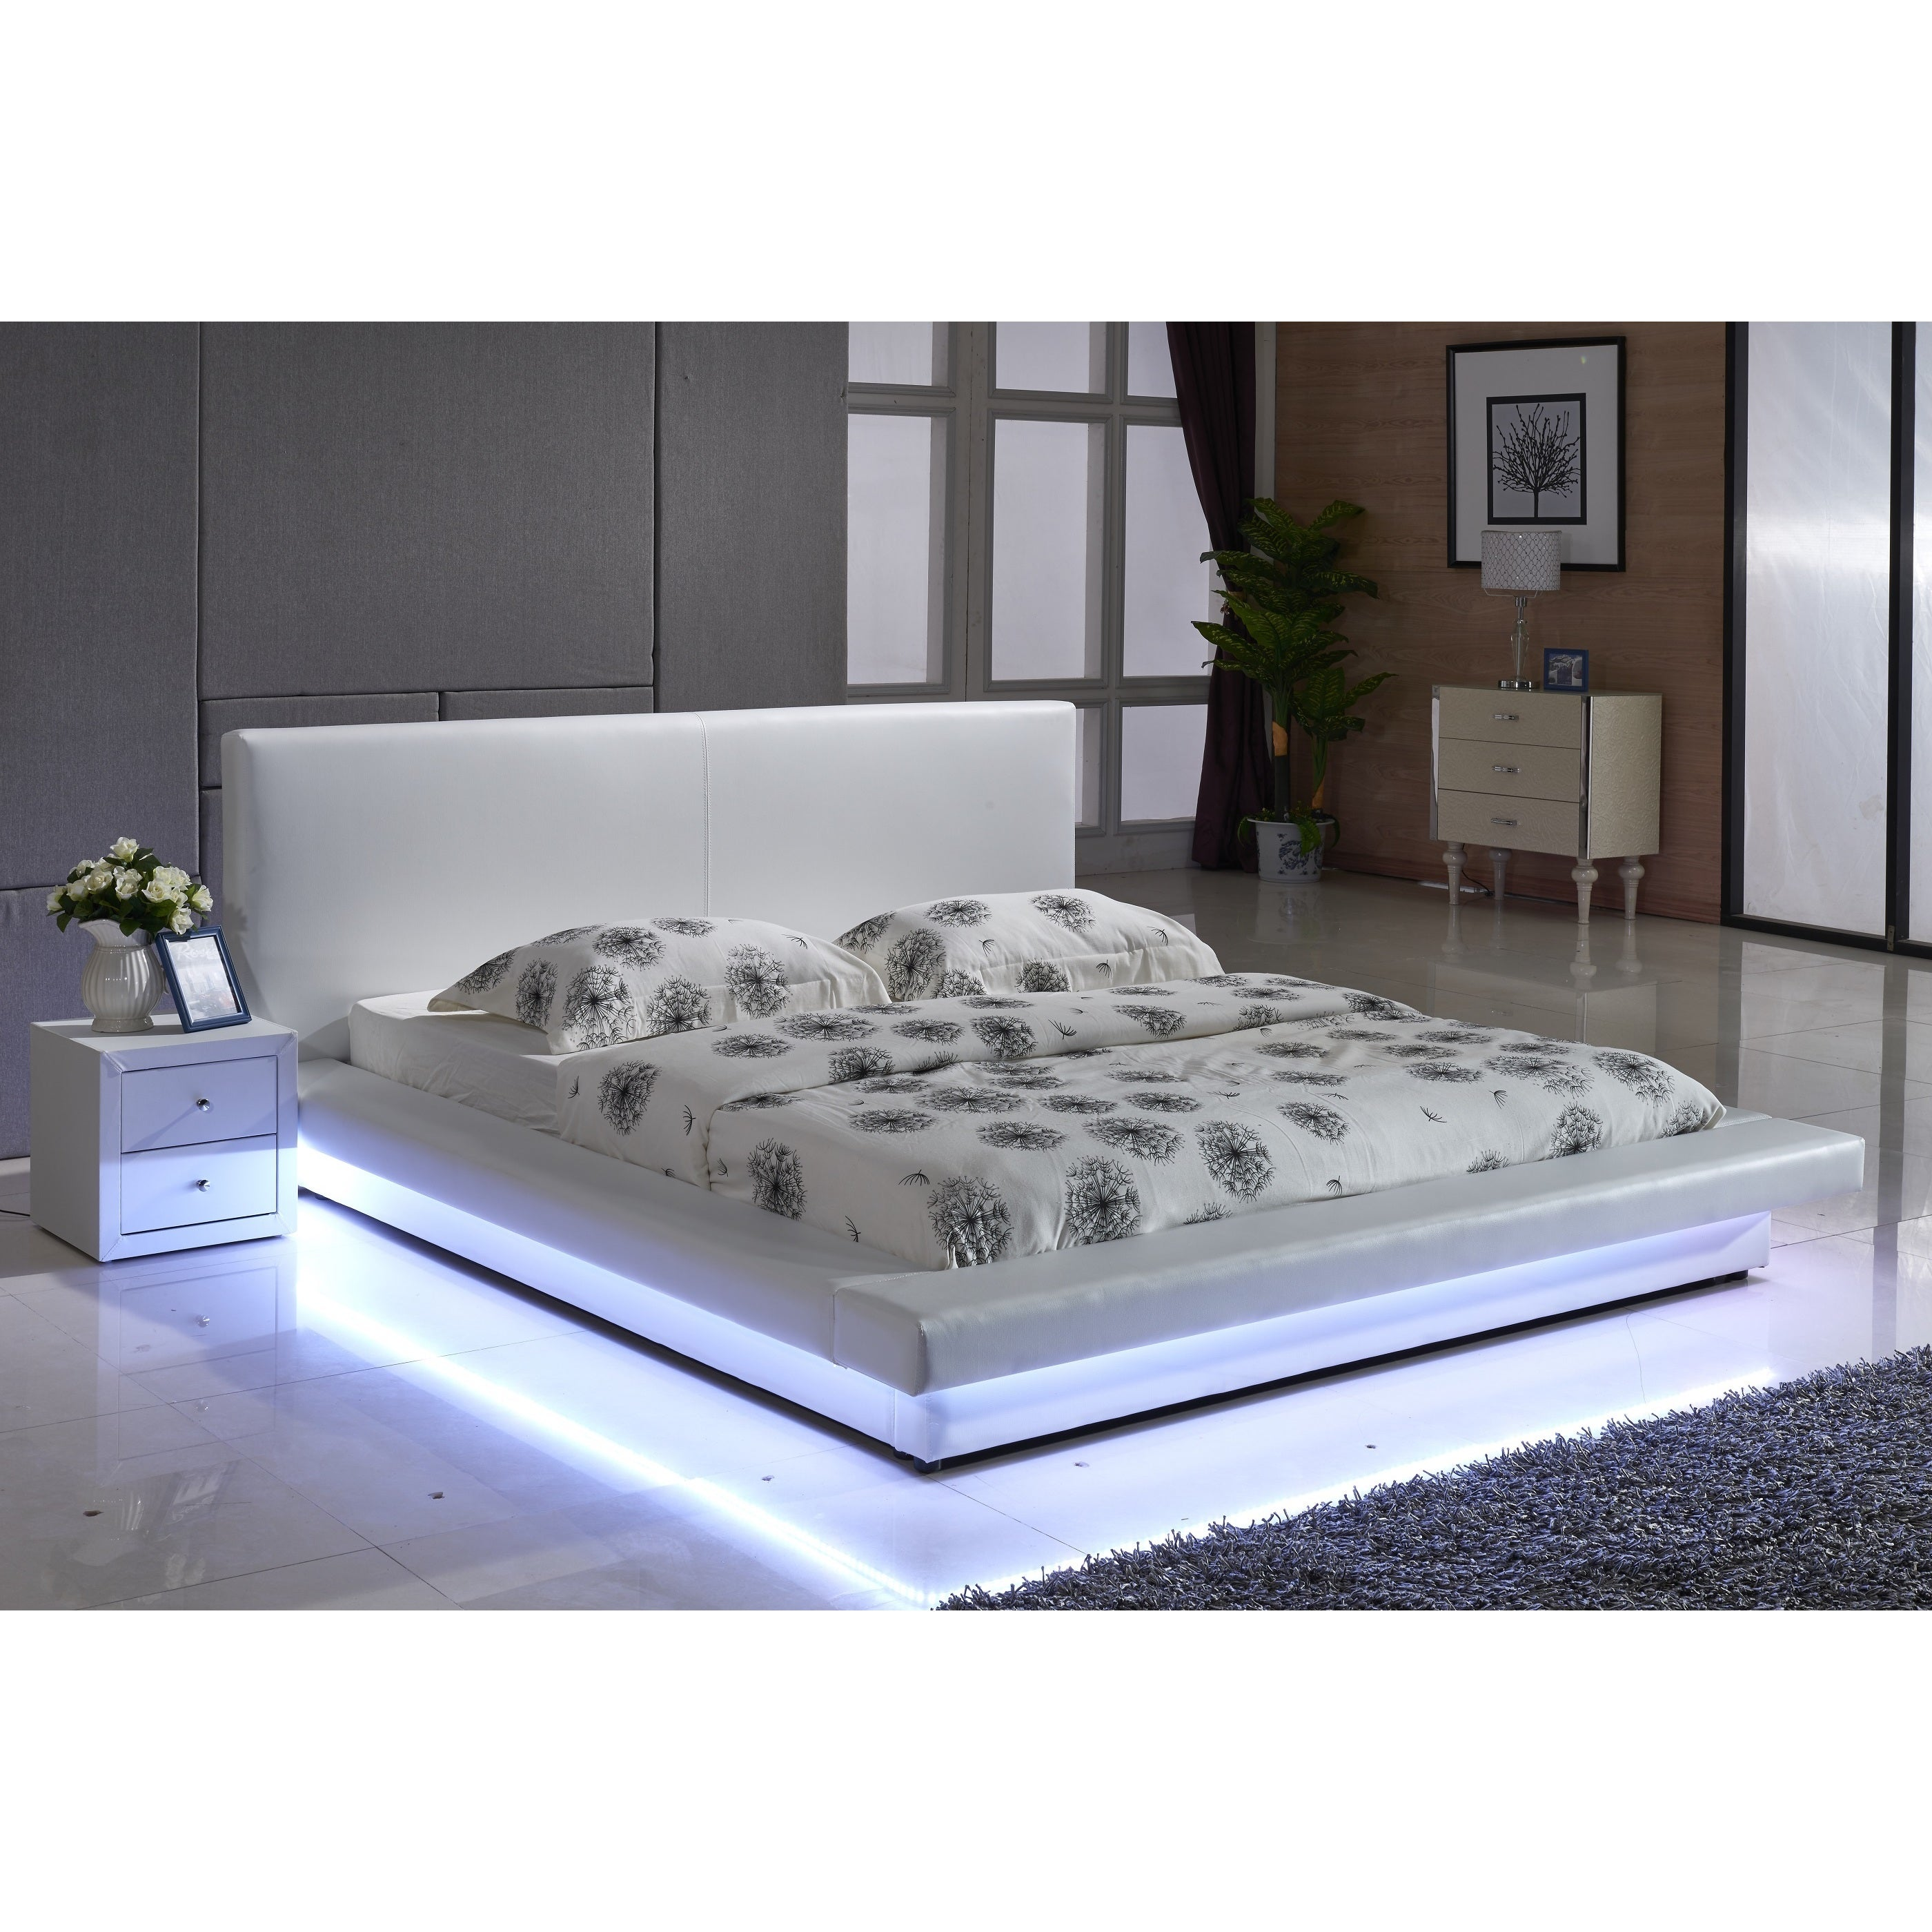 Contemporary White Platform Bed With Led Strip Lights Overstock 10993035